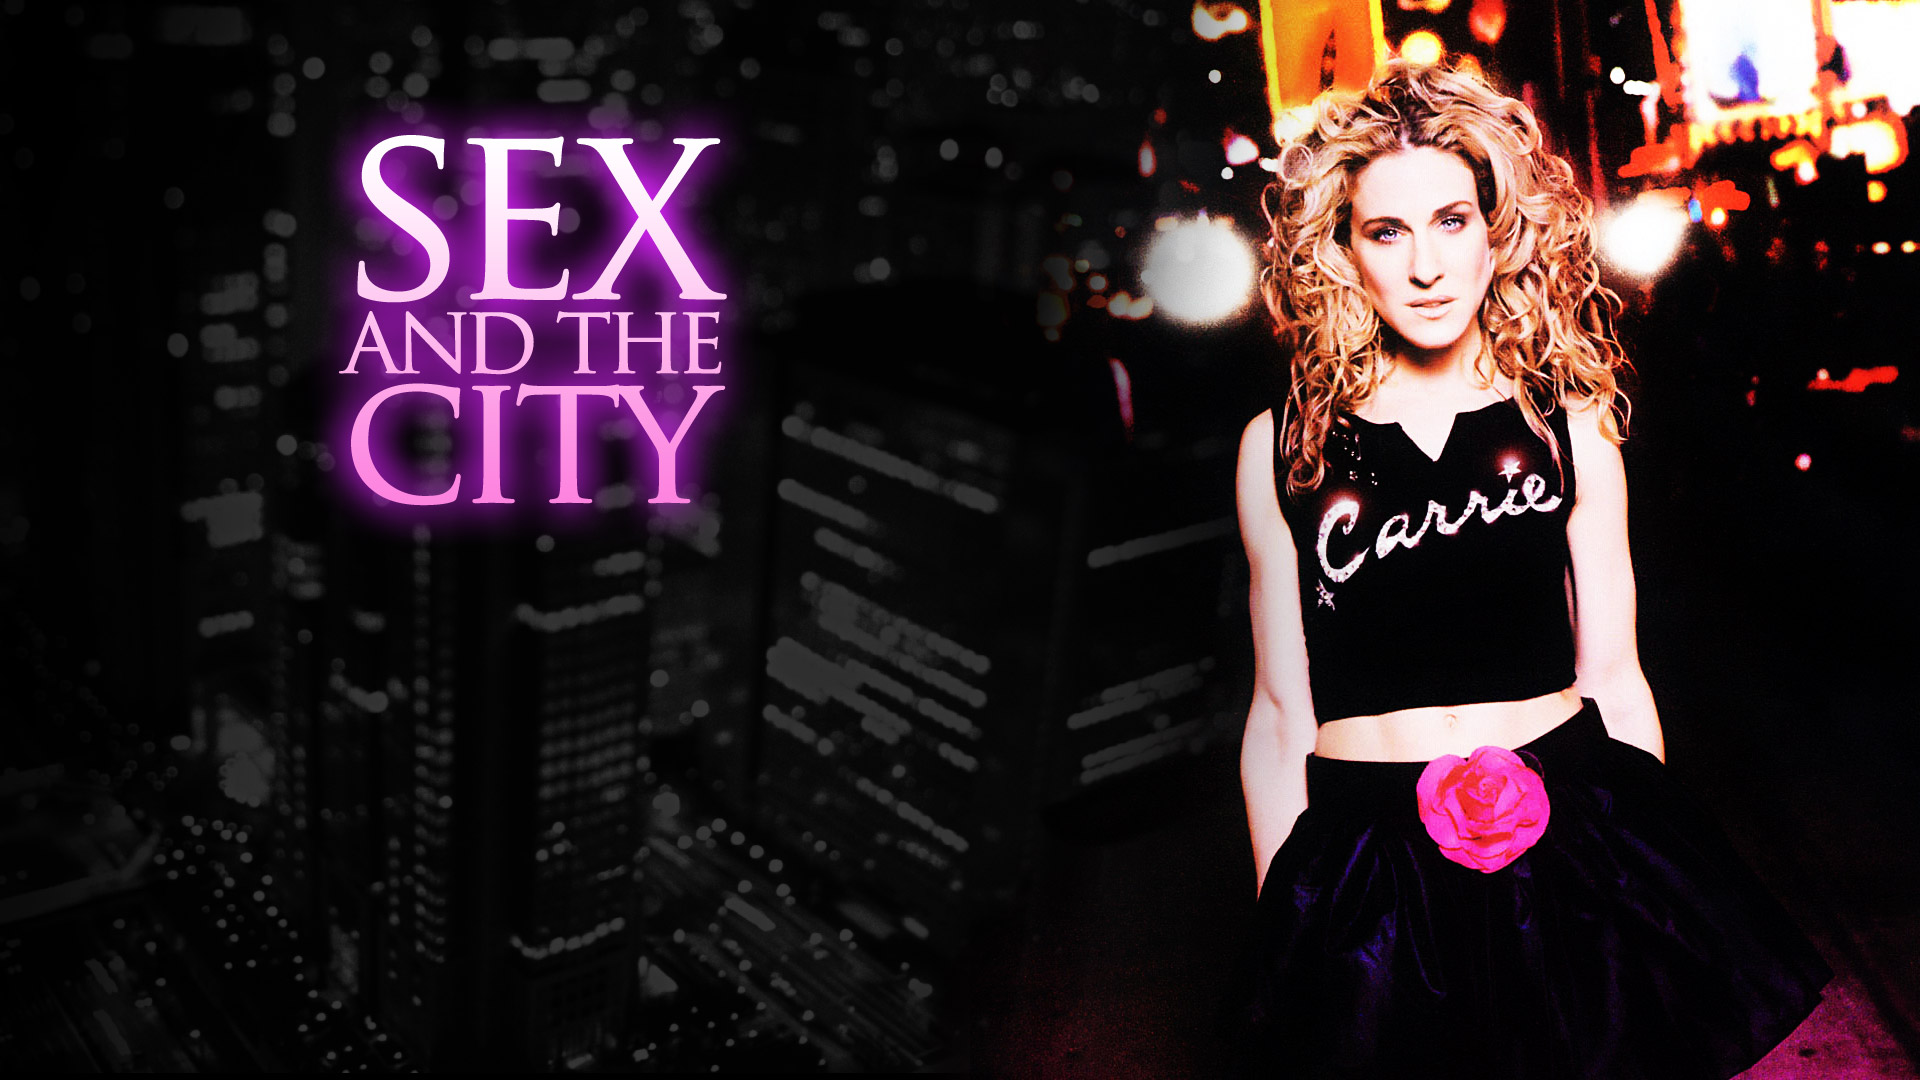 Sex and the city creator used to blast the theme song in his car to get people to watch the show